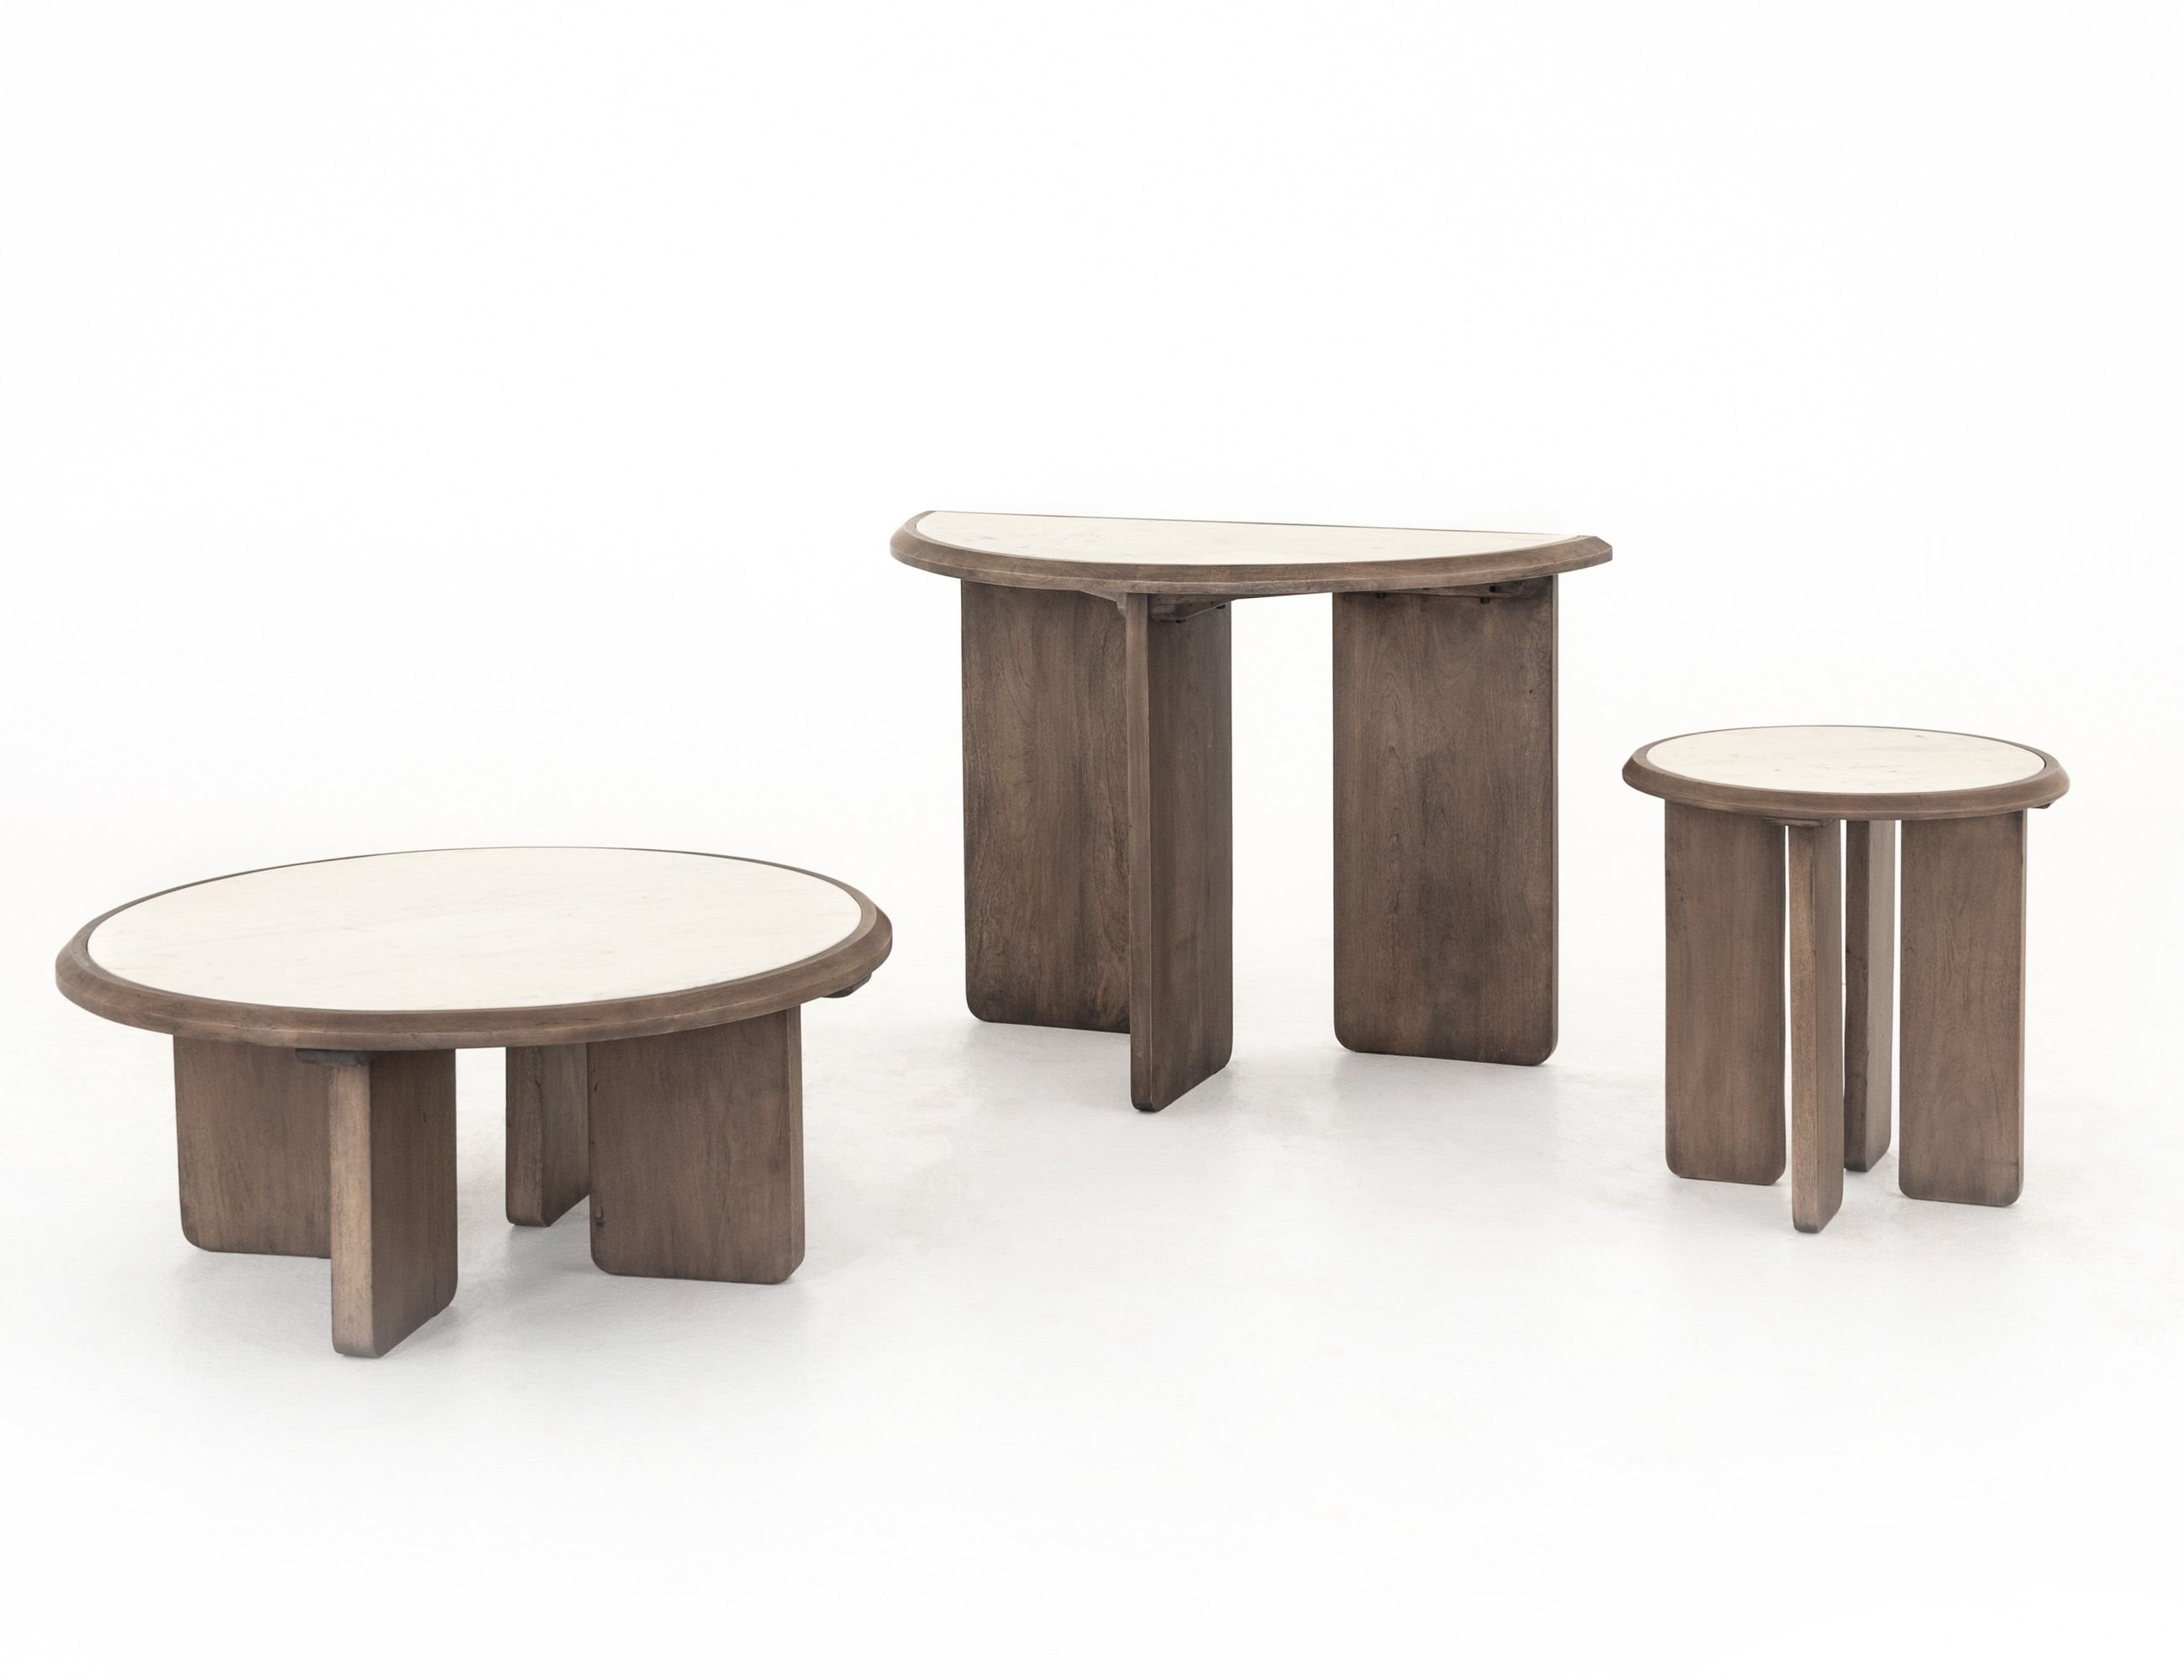 - Lido Round Coffee Table In 2020 Round Coffee Table, Table, Home